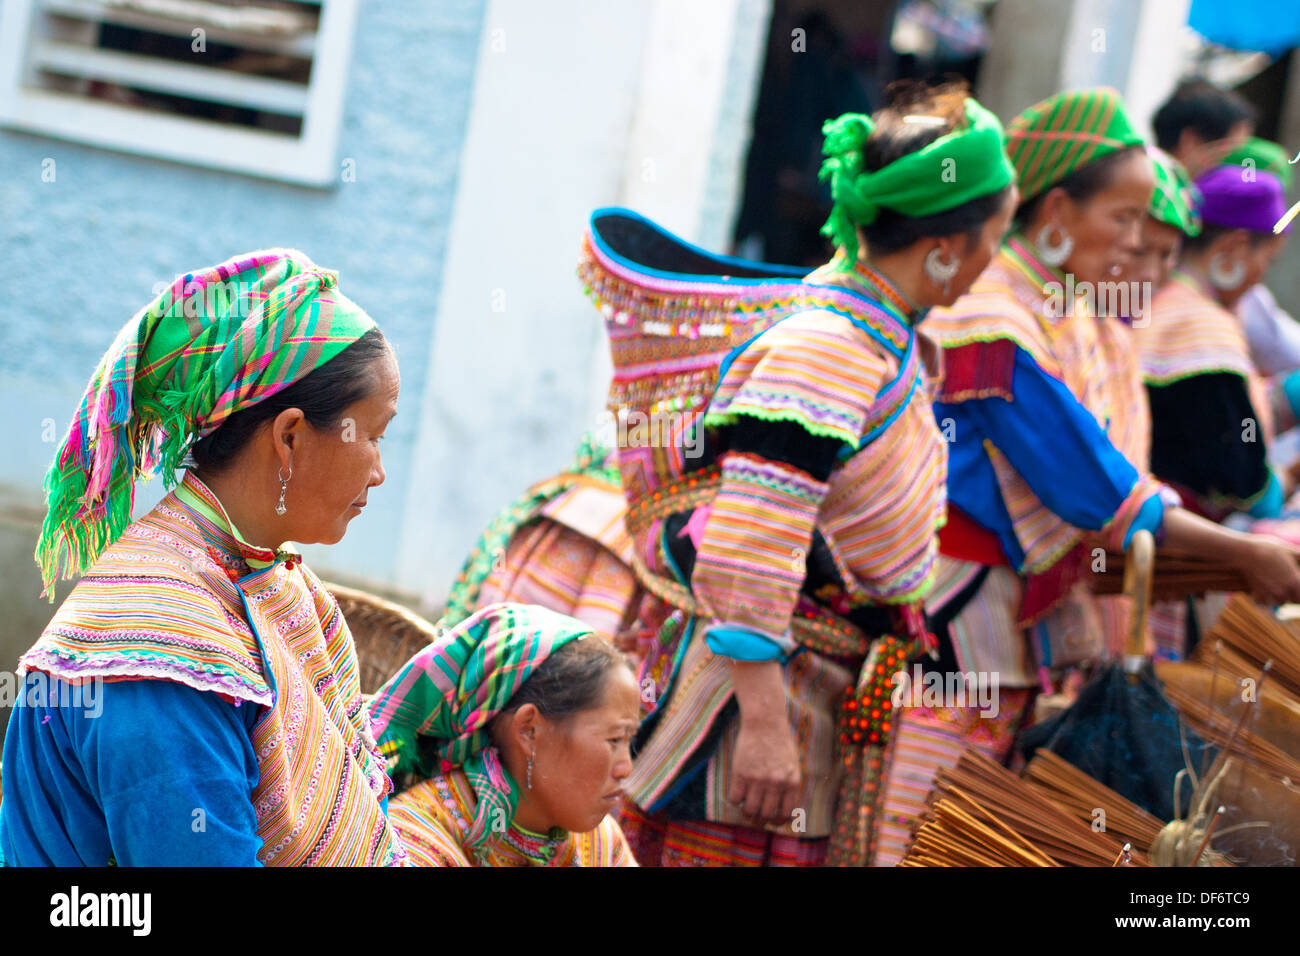 Flower Hmong women at the Bac Ha Sunday morning market in Bac Ha, Lao Cai Province, Vietnam. - Stock Image